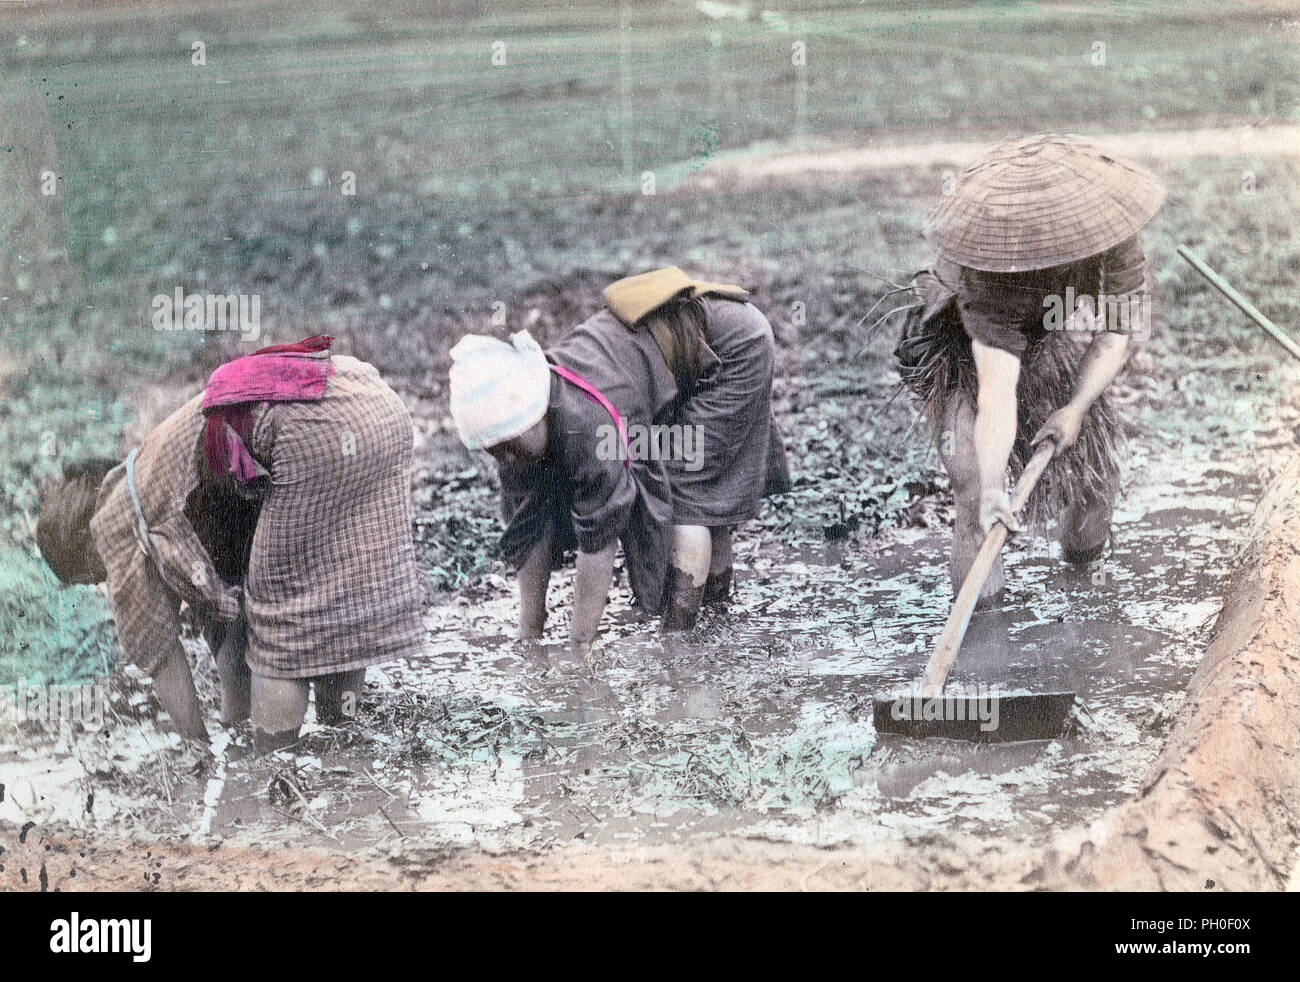 [ 1890s Japan - Rice Farming ] —   Three farmers working in a rice field. The farmer on the right is wearing a sugegasa (conical hat).  19th century vintage albumen photograph. - Stock Image